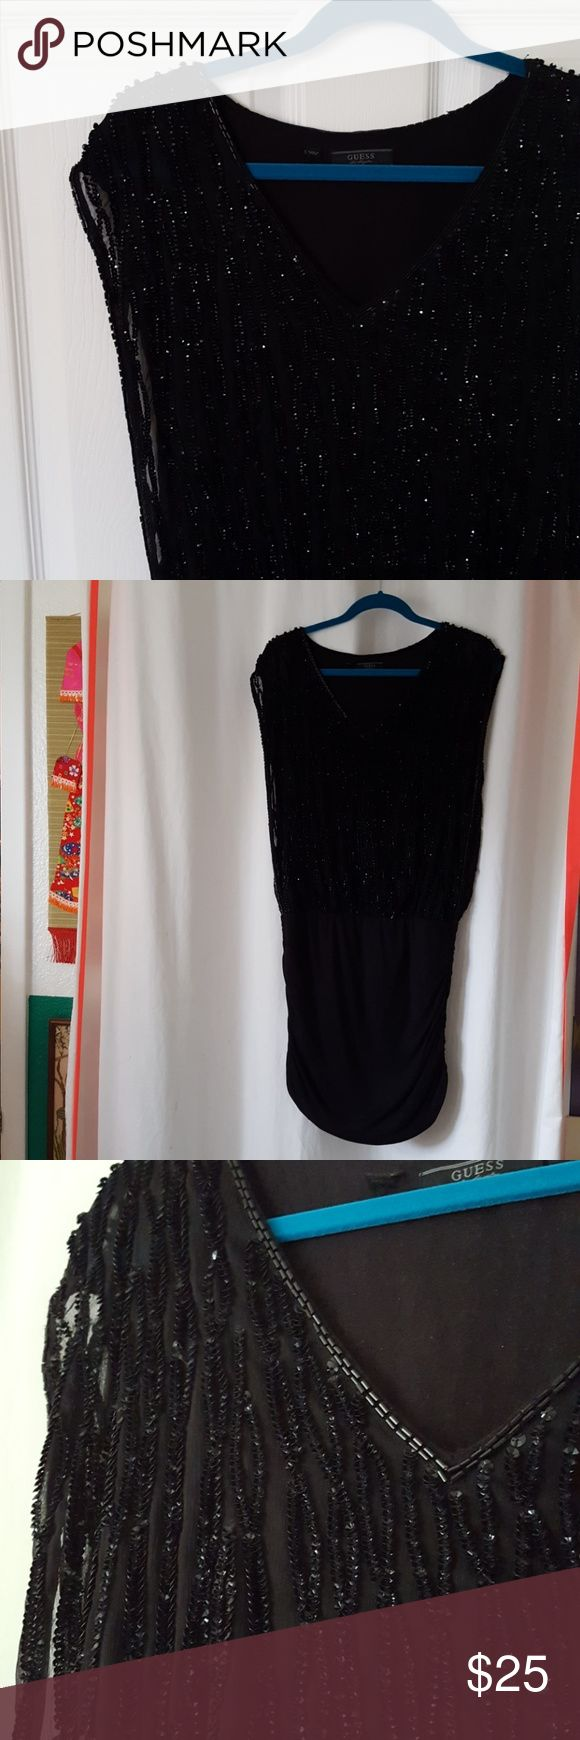 "Mini tunic dress Gorgeous mini dress with sheer beaded and sequin overlay at top. Perfect LBD for girls night out! Also works as a layering piece over skinny jeans or leggings. Dress has ruched sides and measures 36"" from shoulder to hem line. Guess Dresses Mini"